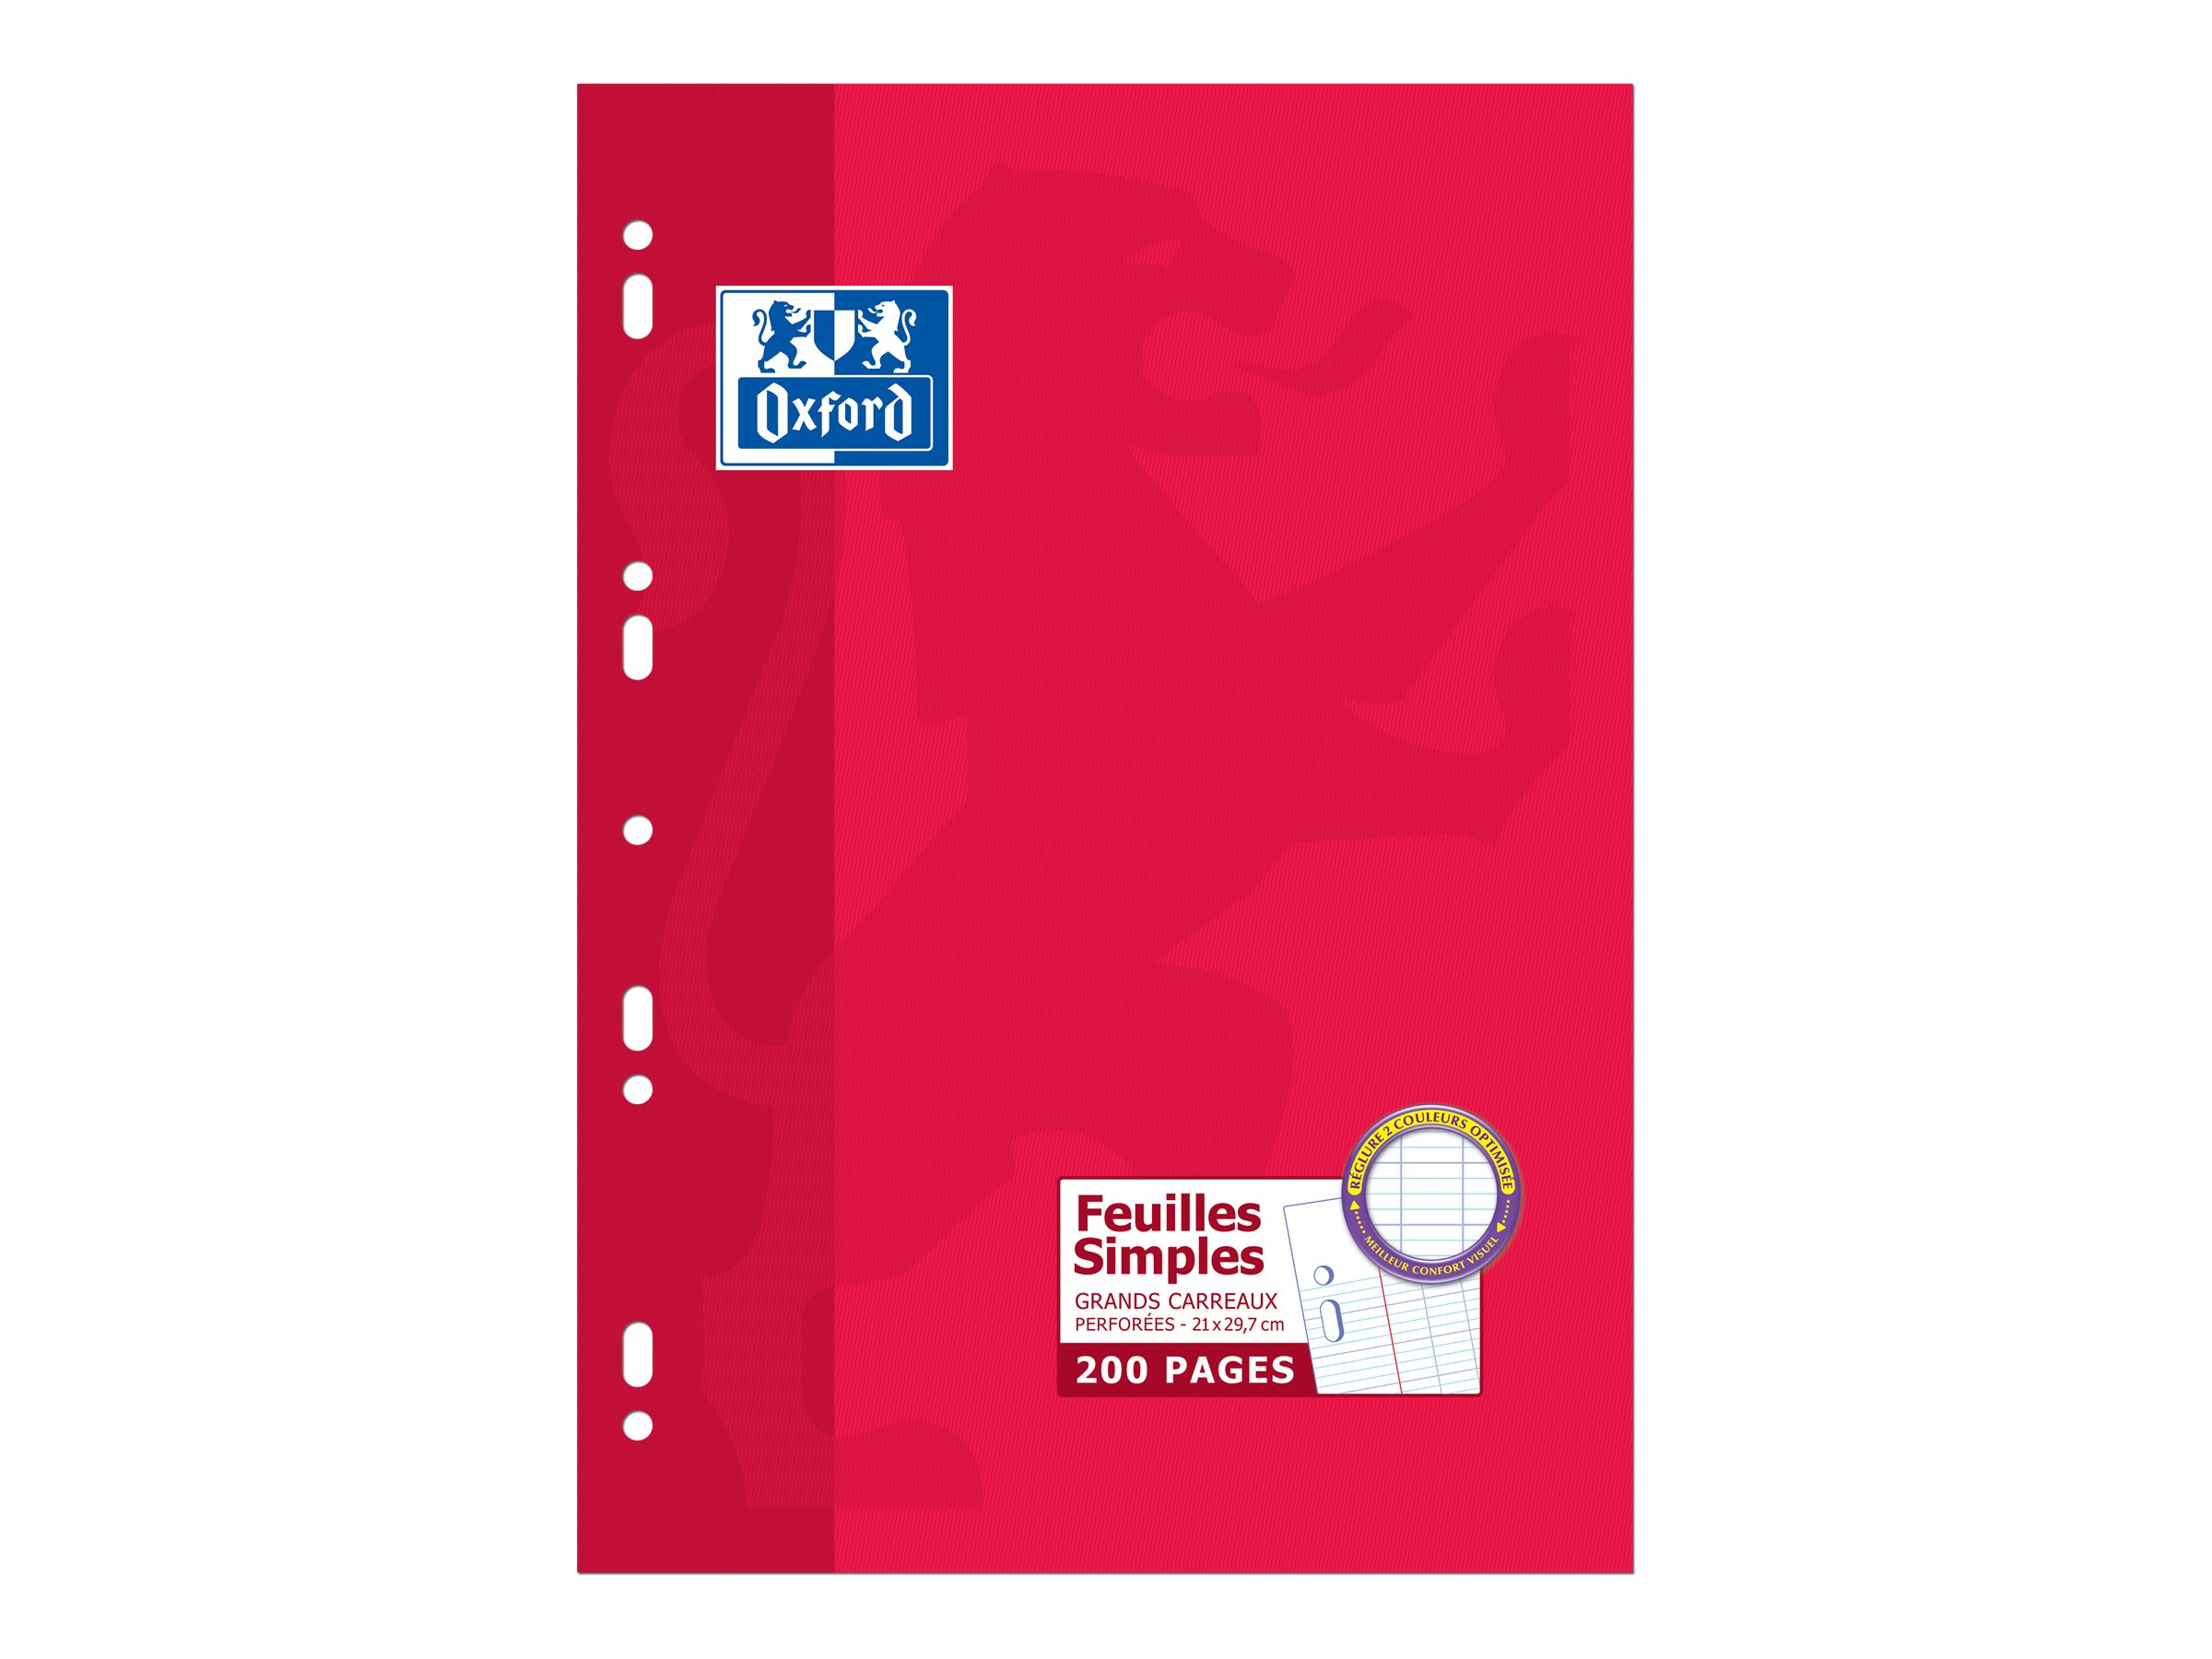 Oxford - A4 - Copies simples - 21 x 29,7 - 200 pages - Grands carreaux